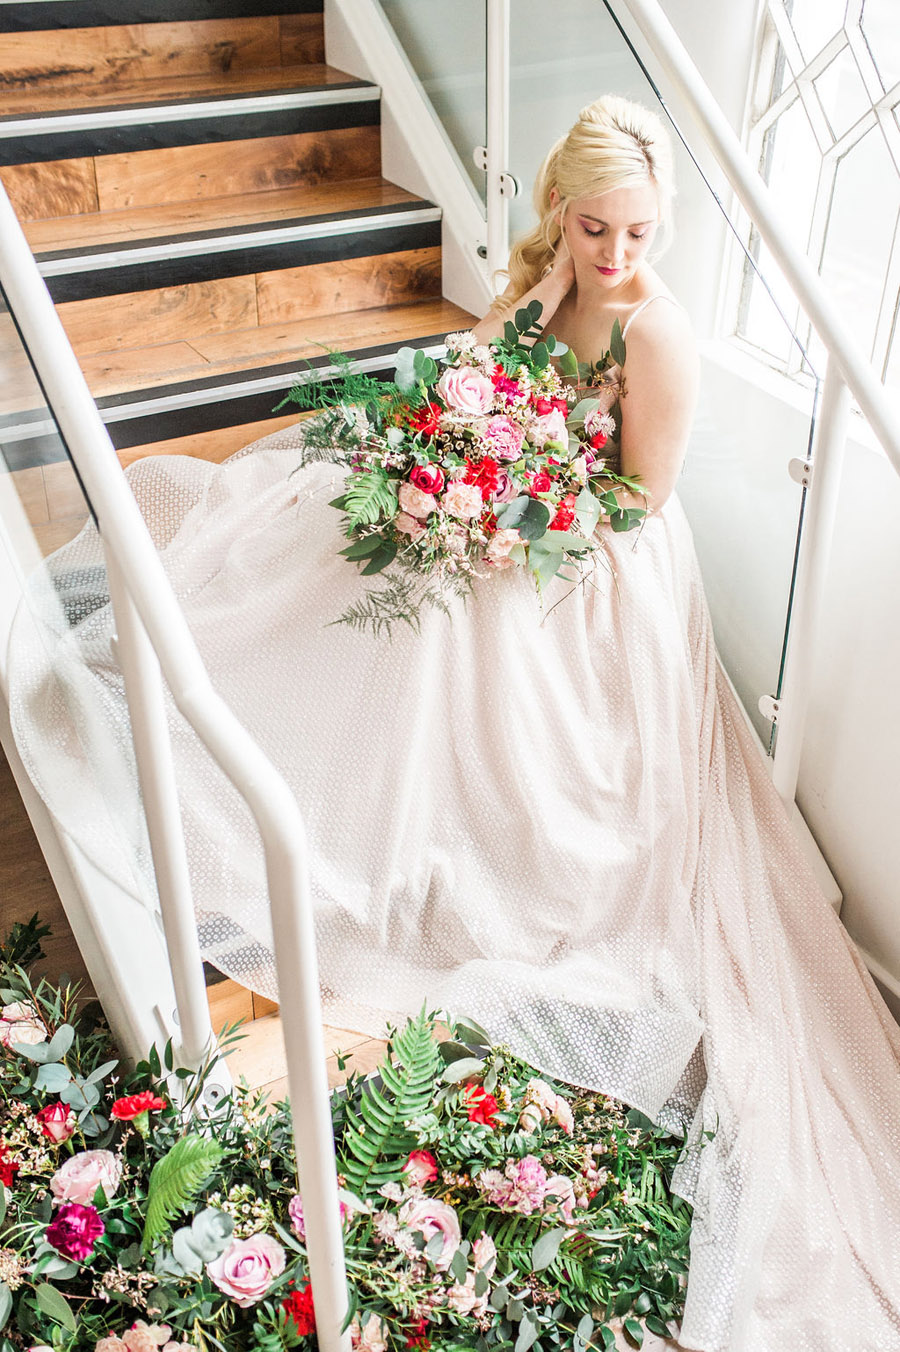 Modern luxe wedding style ideas with images by Laura Jane Photography (15)